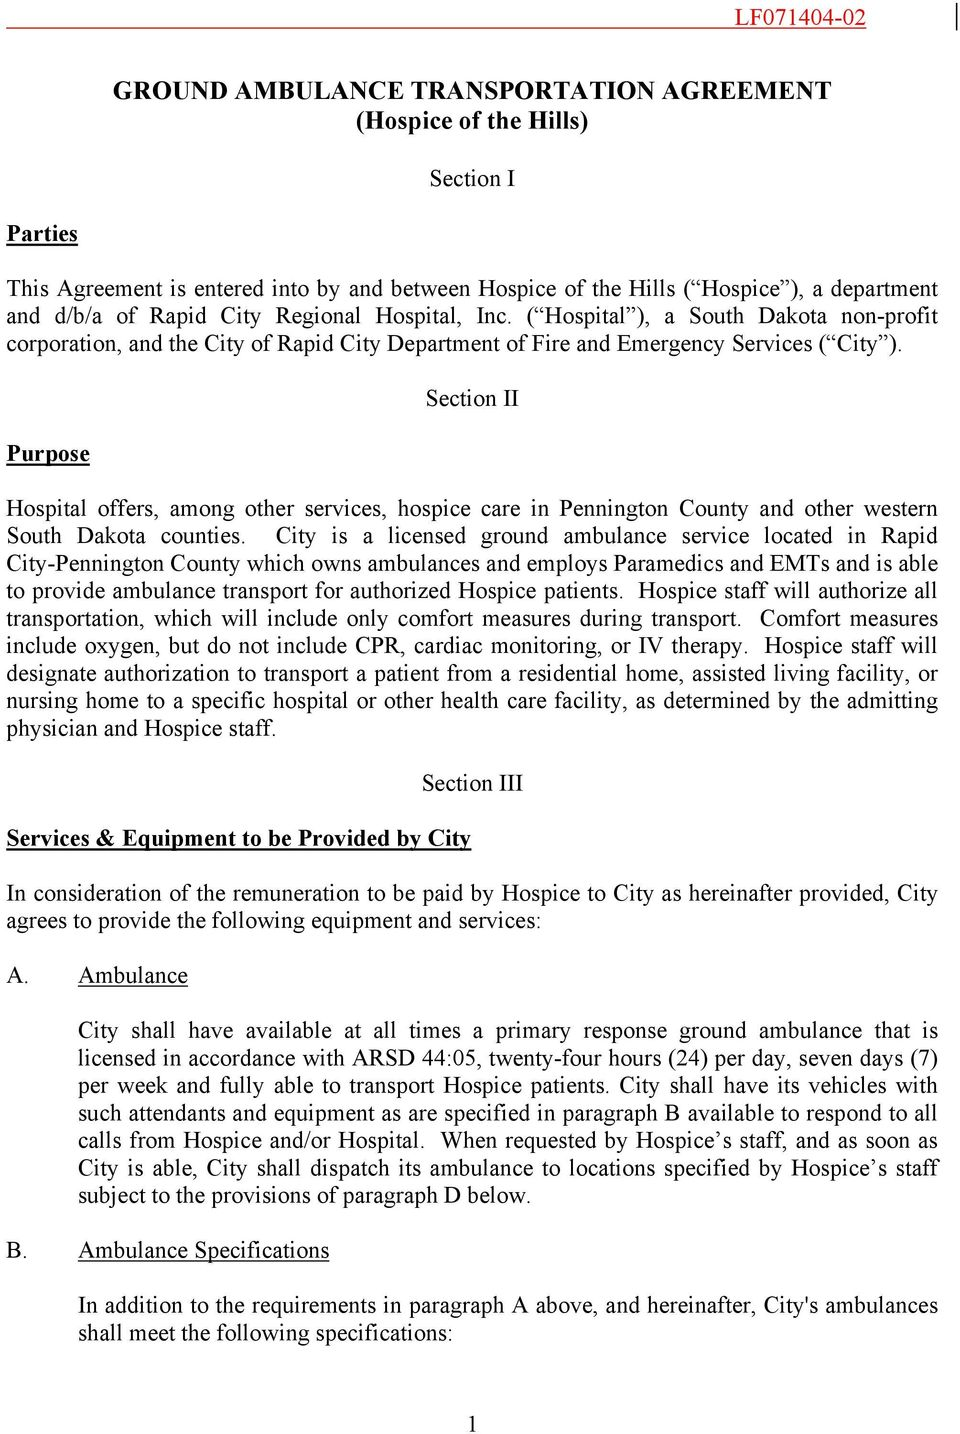 Ground Ambulance Transportation Agreement Hospice Of The Hills Pdf